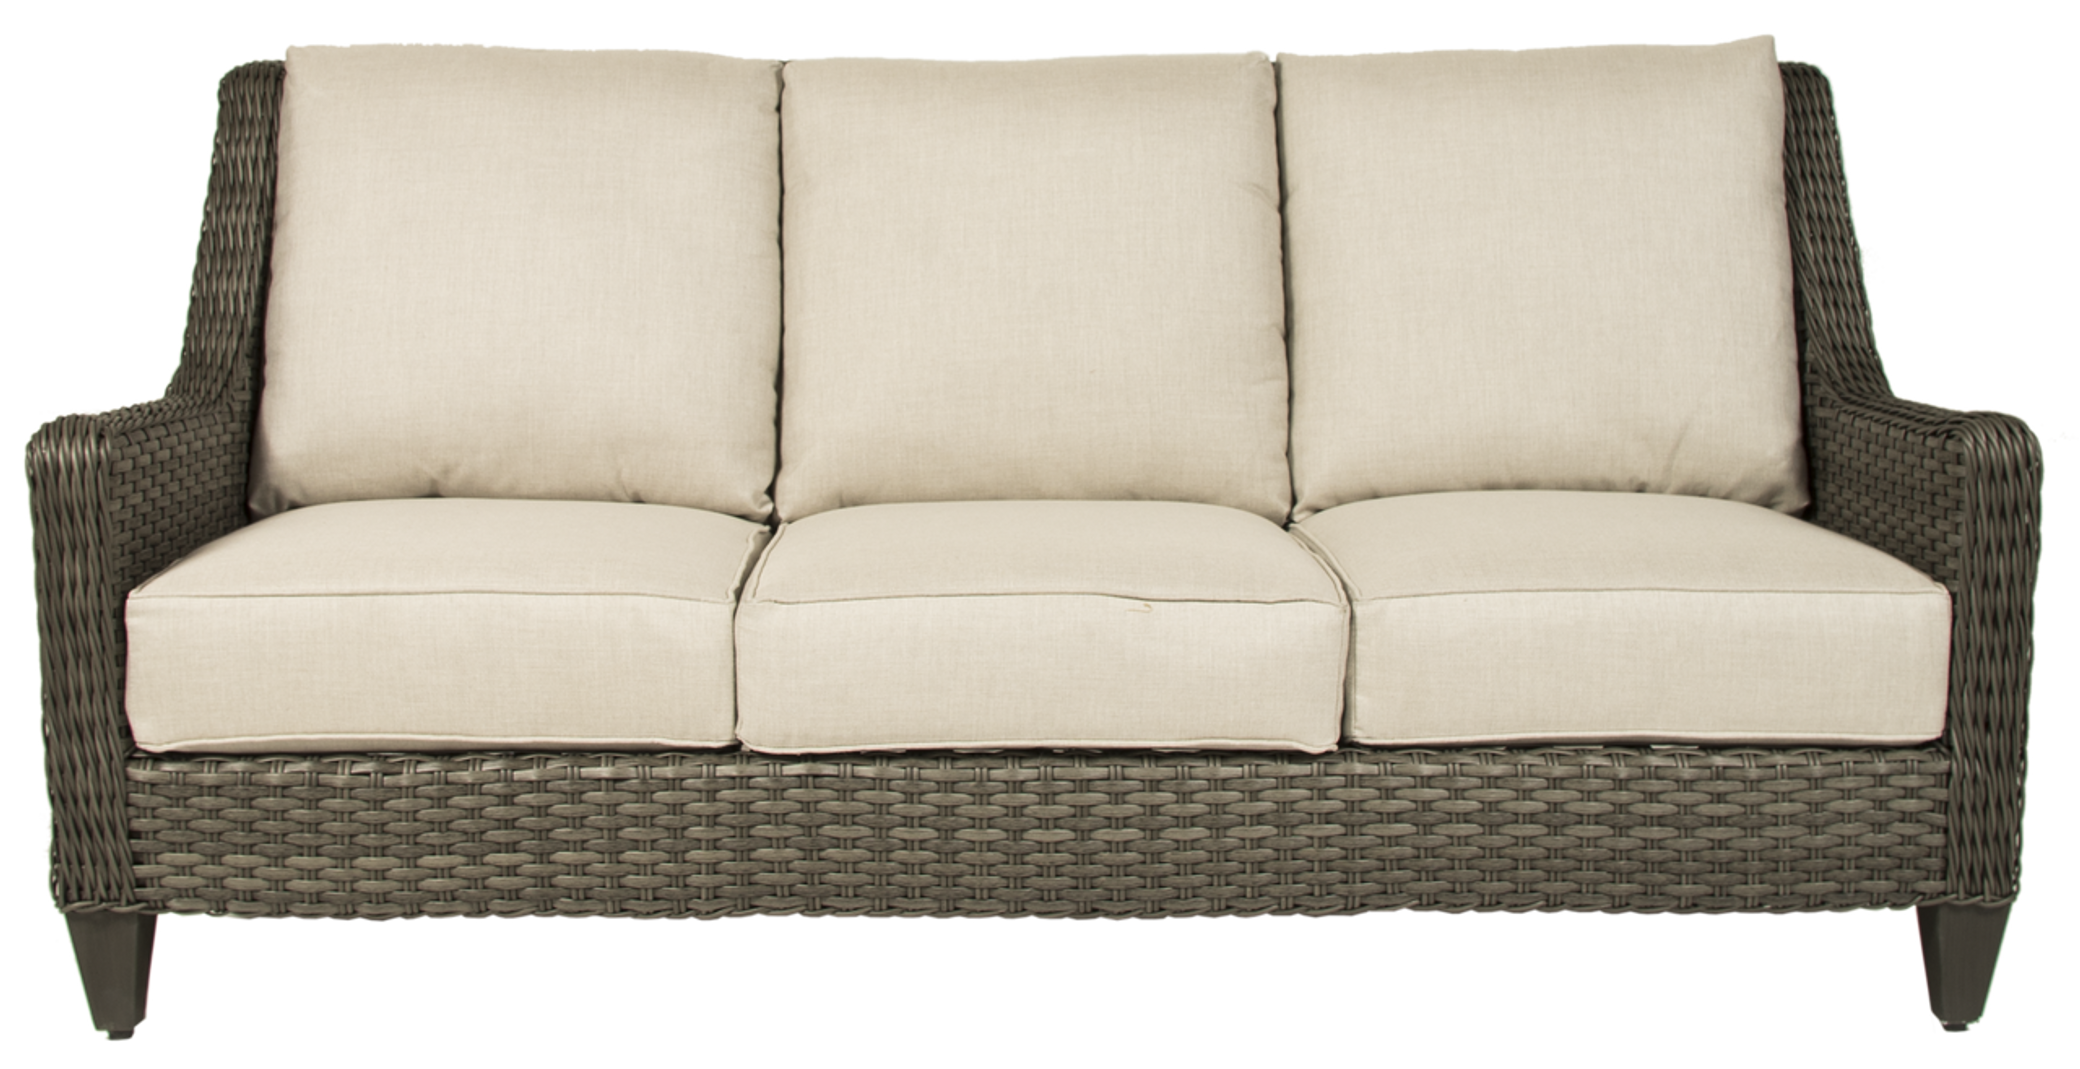 trees and trends furniture. Erwin And Sons Oconee Outdoor Sofa W/Cushions Trees Trends Furniture R